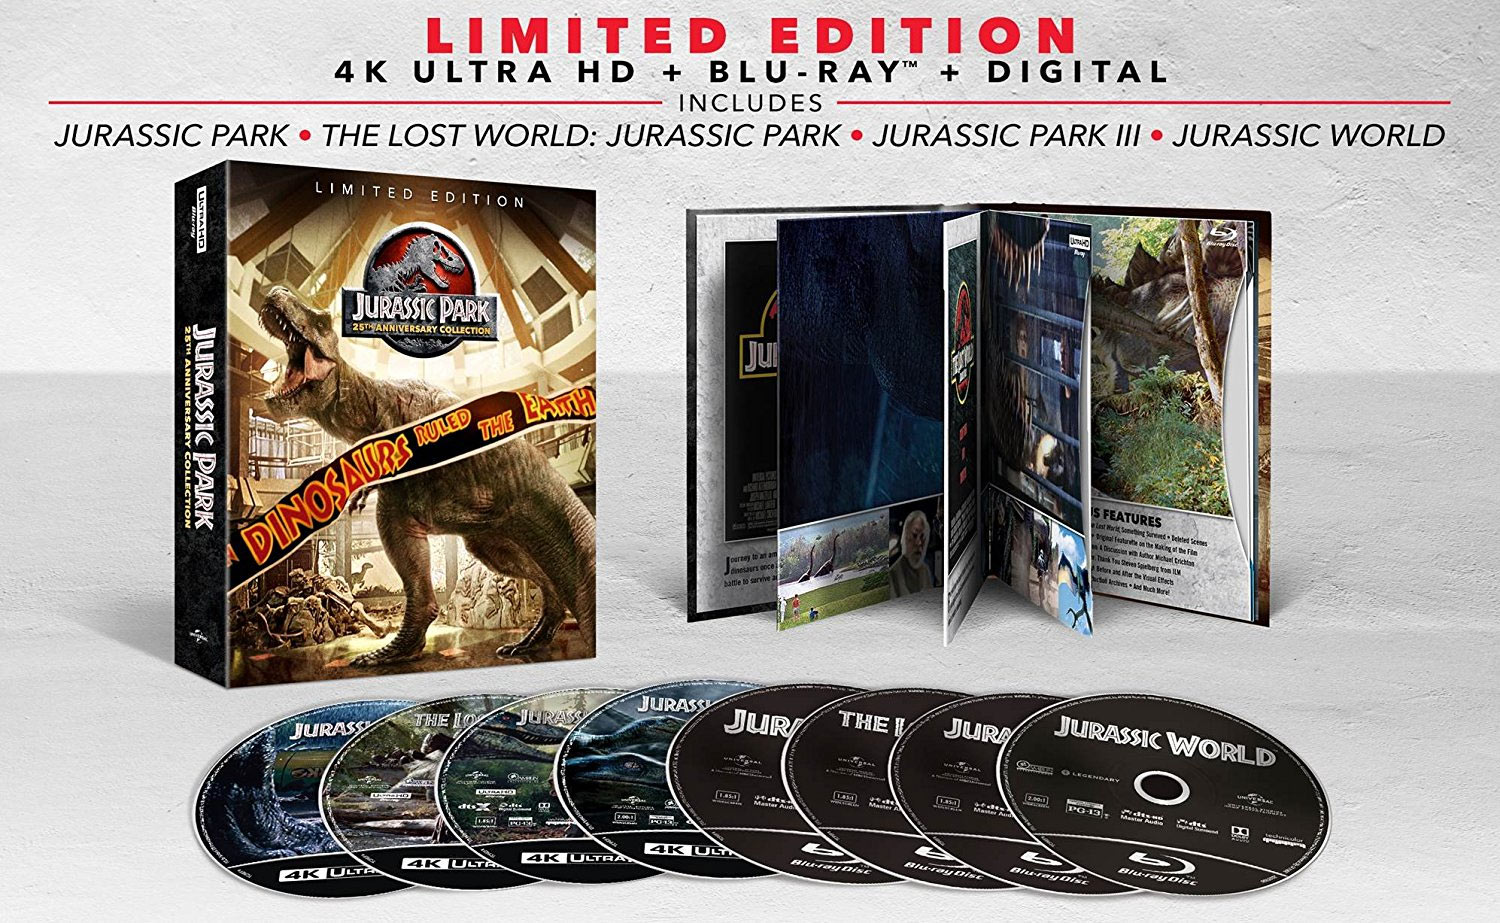 Jurassic Park Collection will be released on UHD Blu-ray in